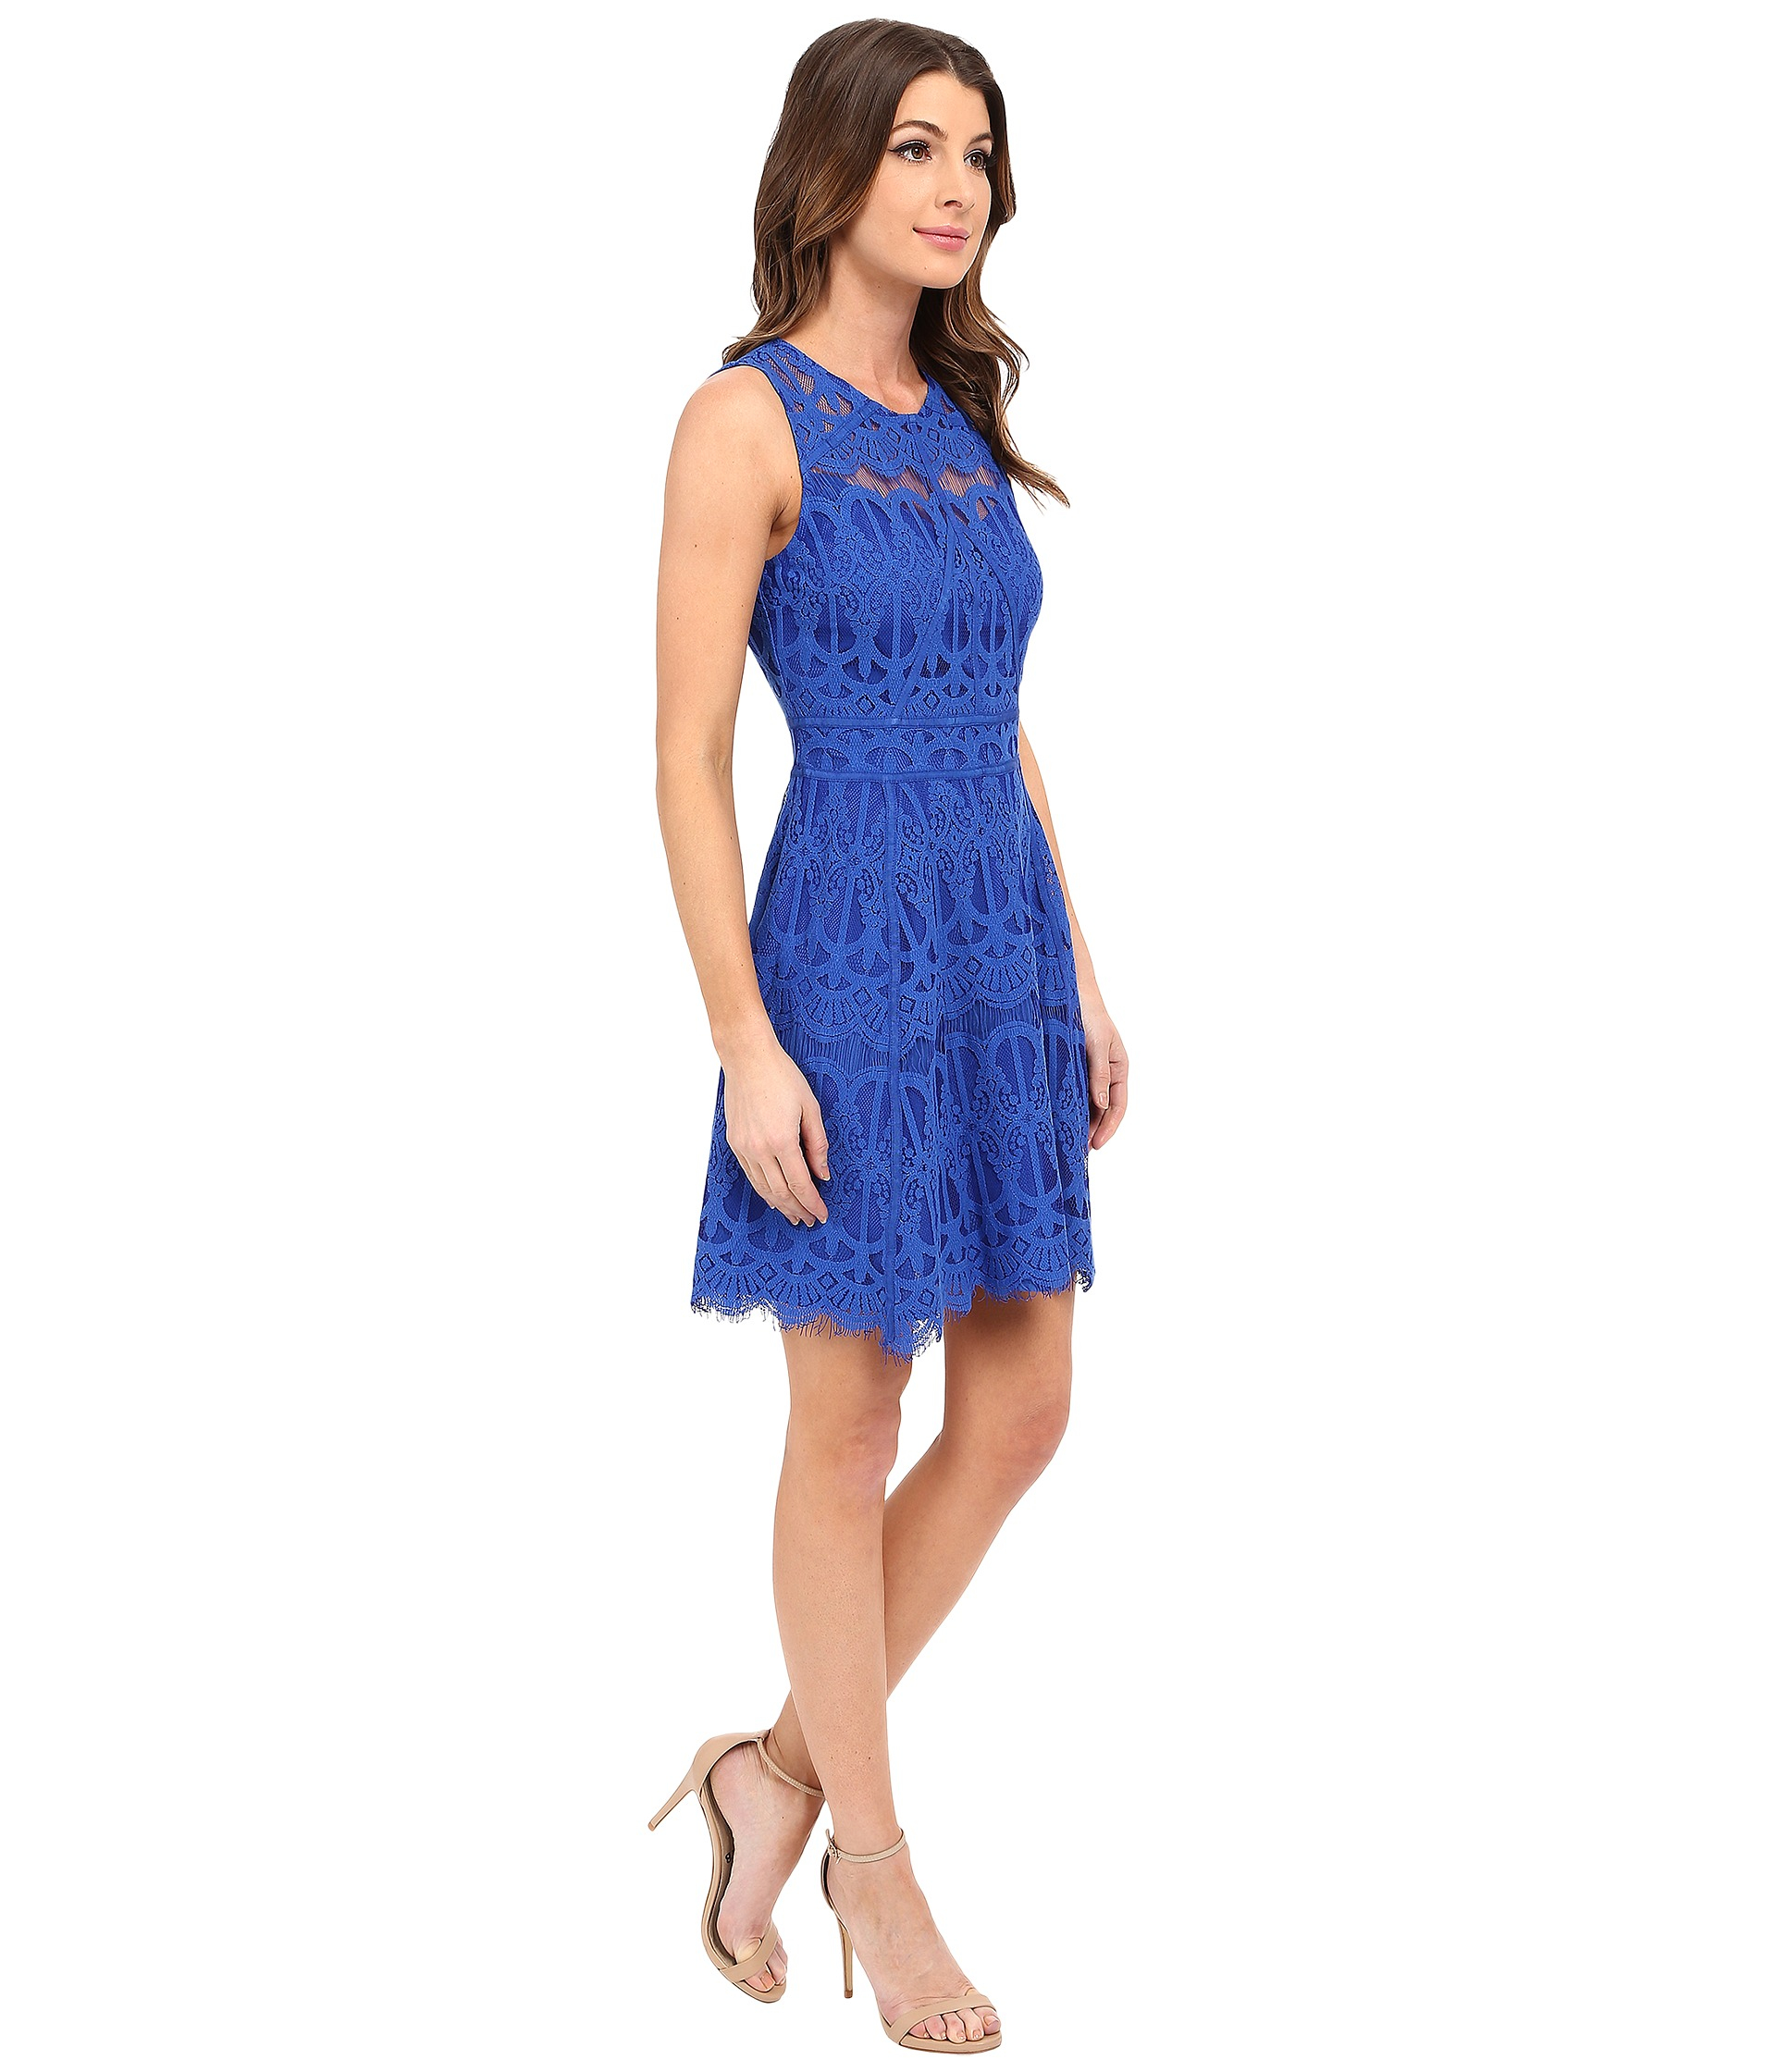 058201989c8 Lyst - Adelyn Rae Lace Fit And Flare Dress W  Gro Grain Contrast ...